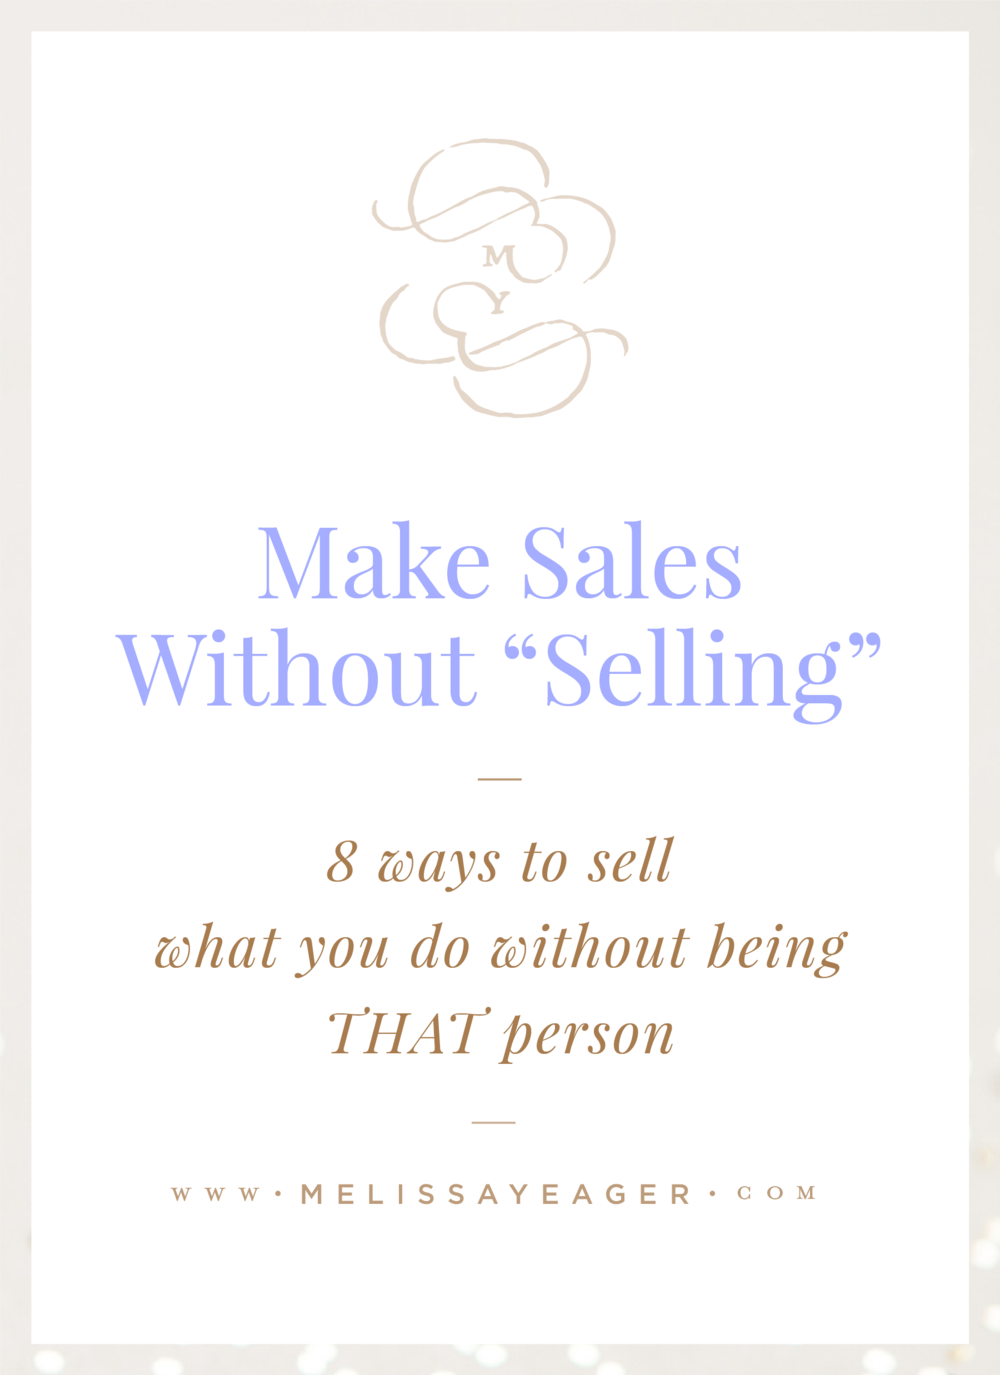 "Make Sales Without ""Selling"" - 8 ways to sell what you do without being THAT person"